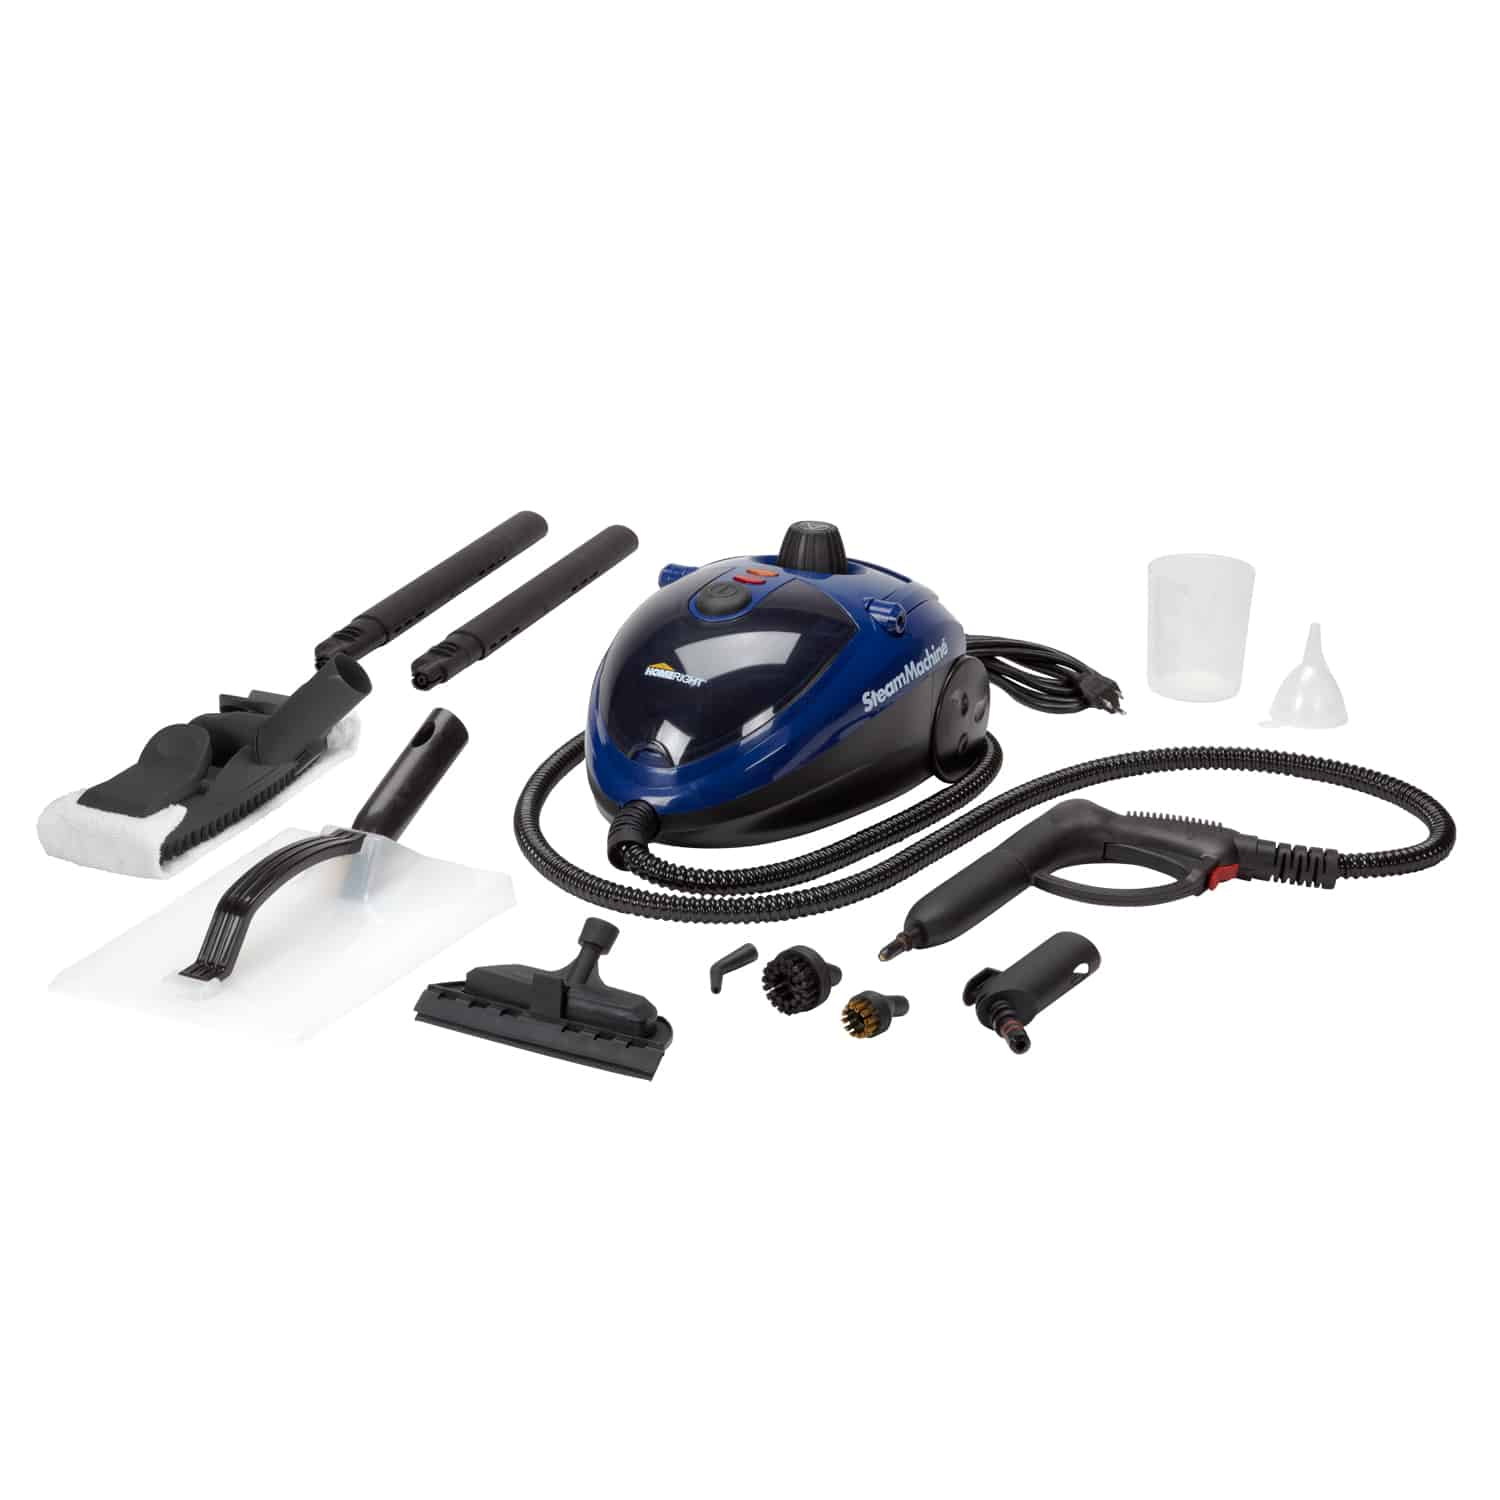 Get Your House Clean For The Holidays With The HomeRight Steam Machine Multi-Purpose Power Steamer